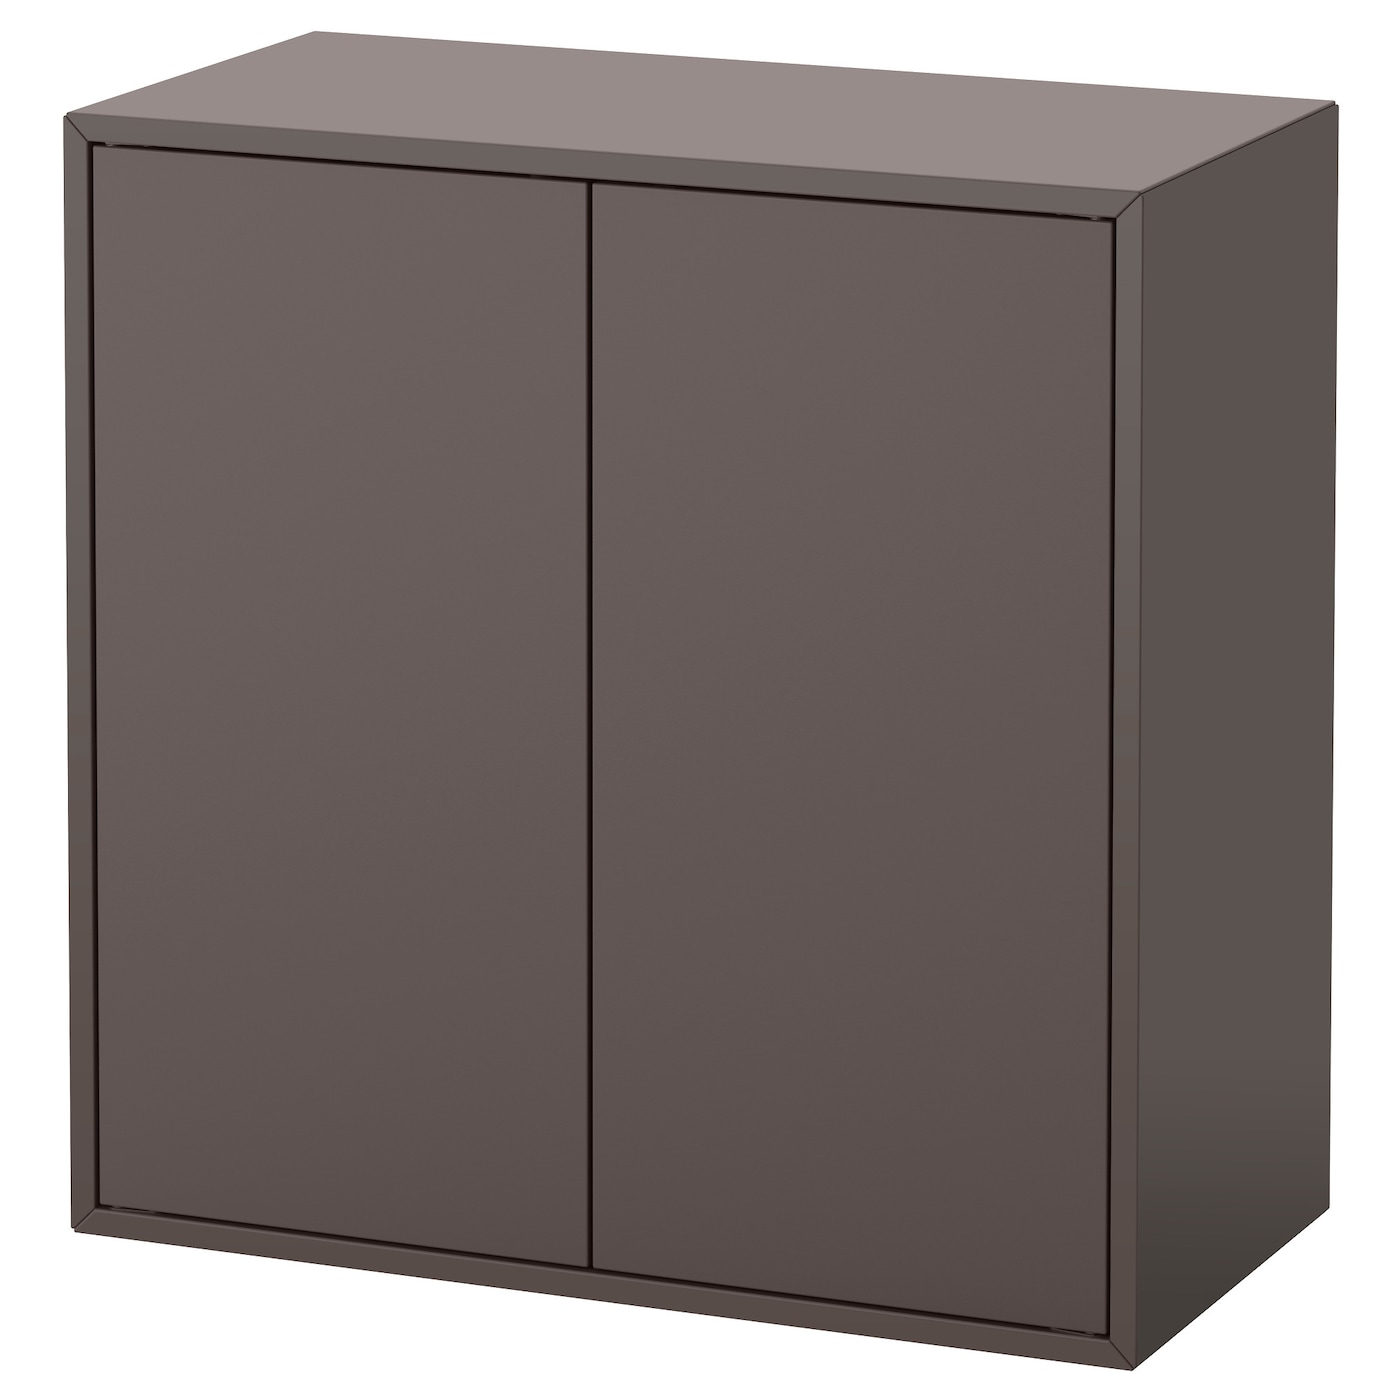 eket cabinet w 2 doors and 1 shelf dark grey 70 x 35 x 70 cm ikea. Black Bedroom Furniture Sets. Home Design Ideas